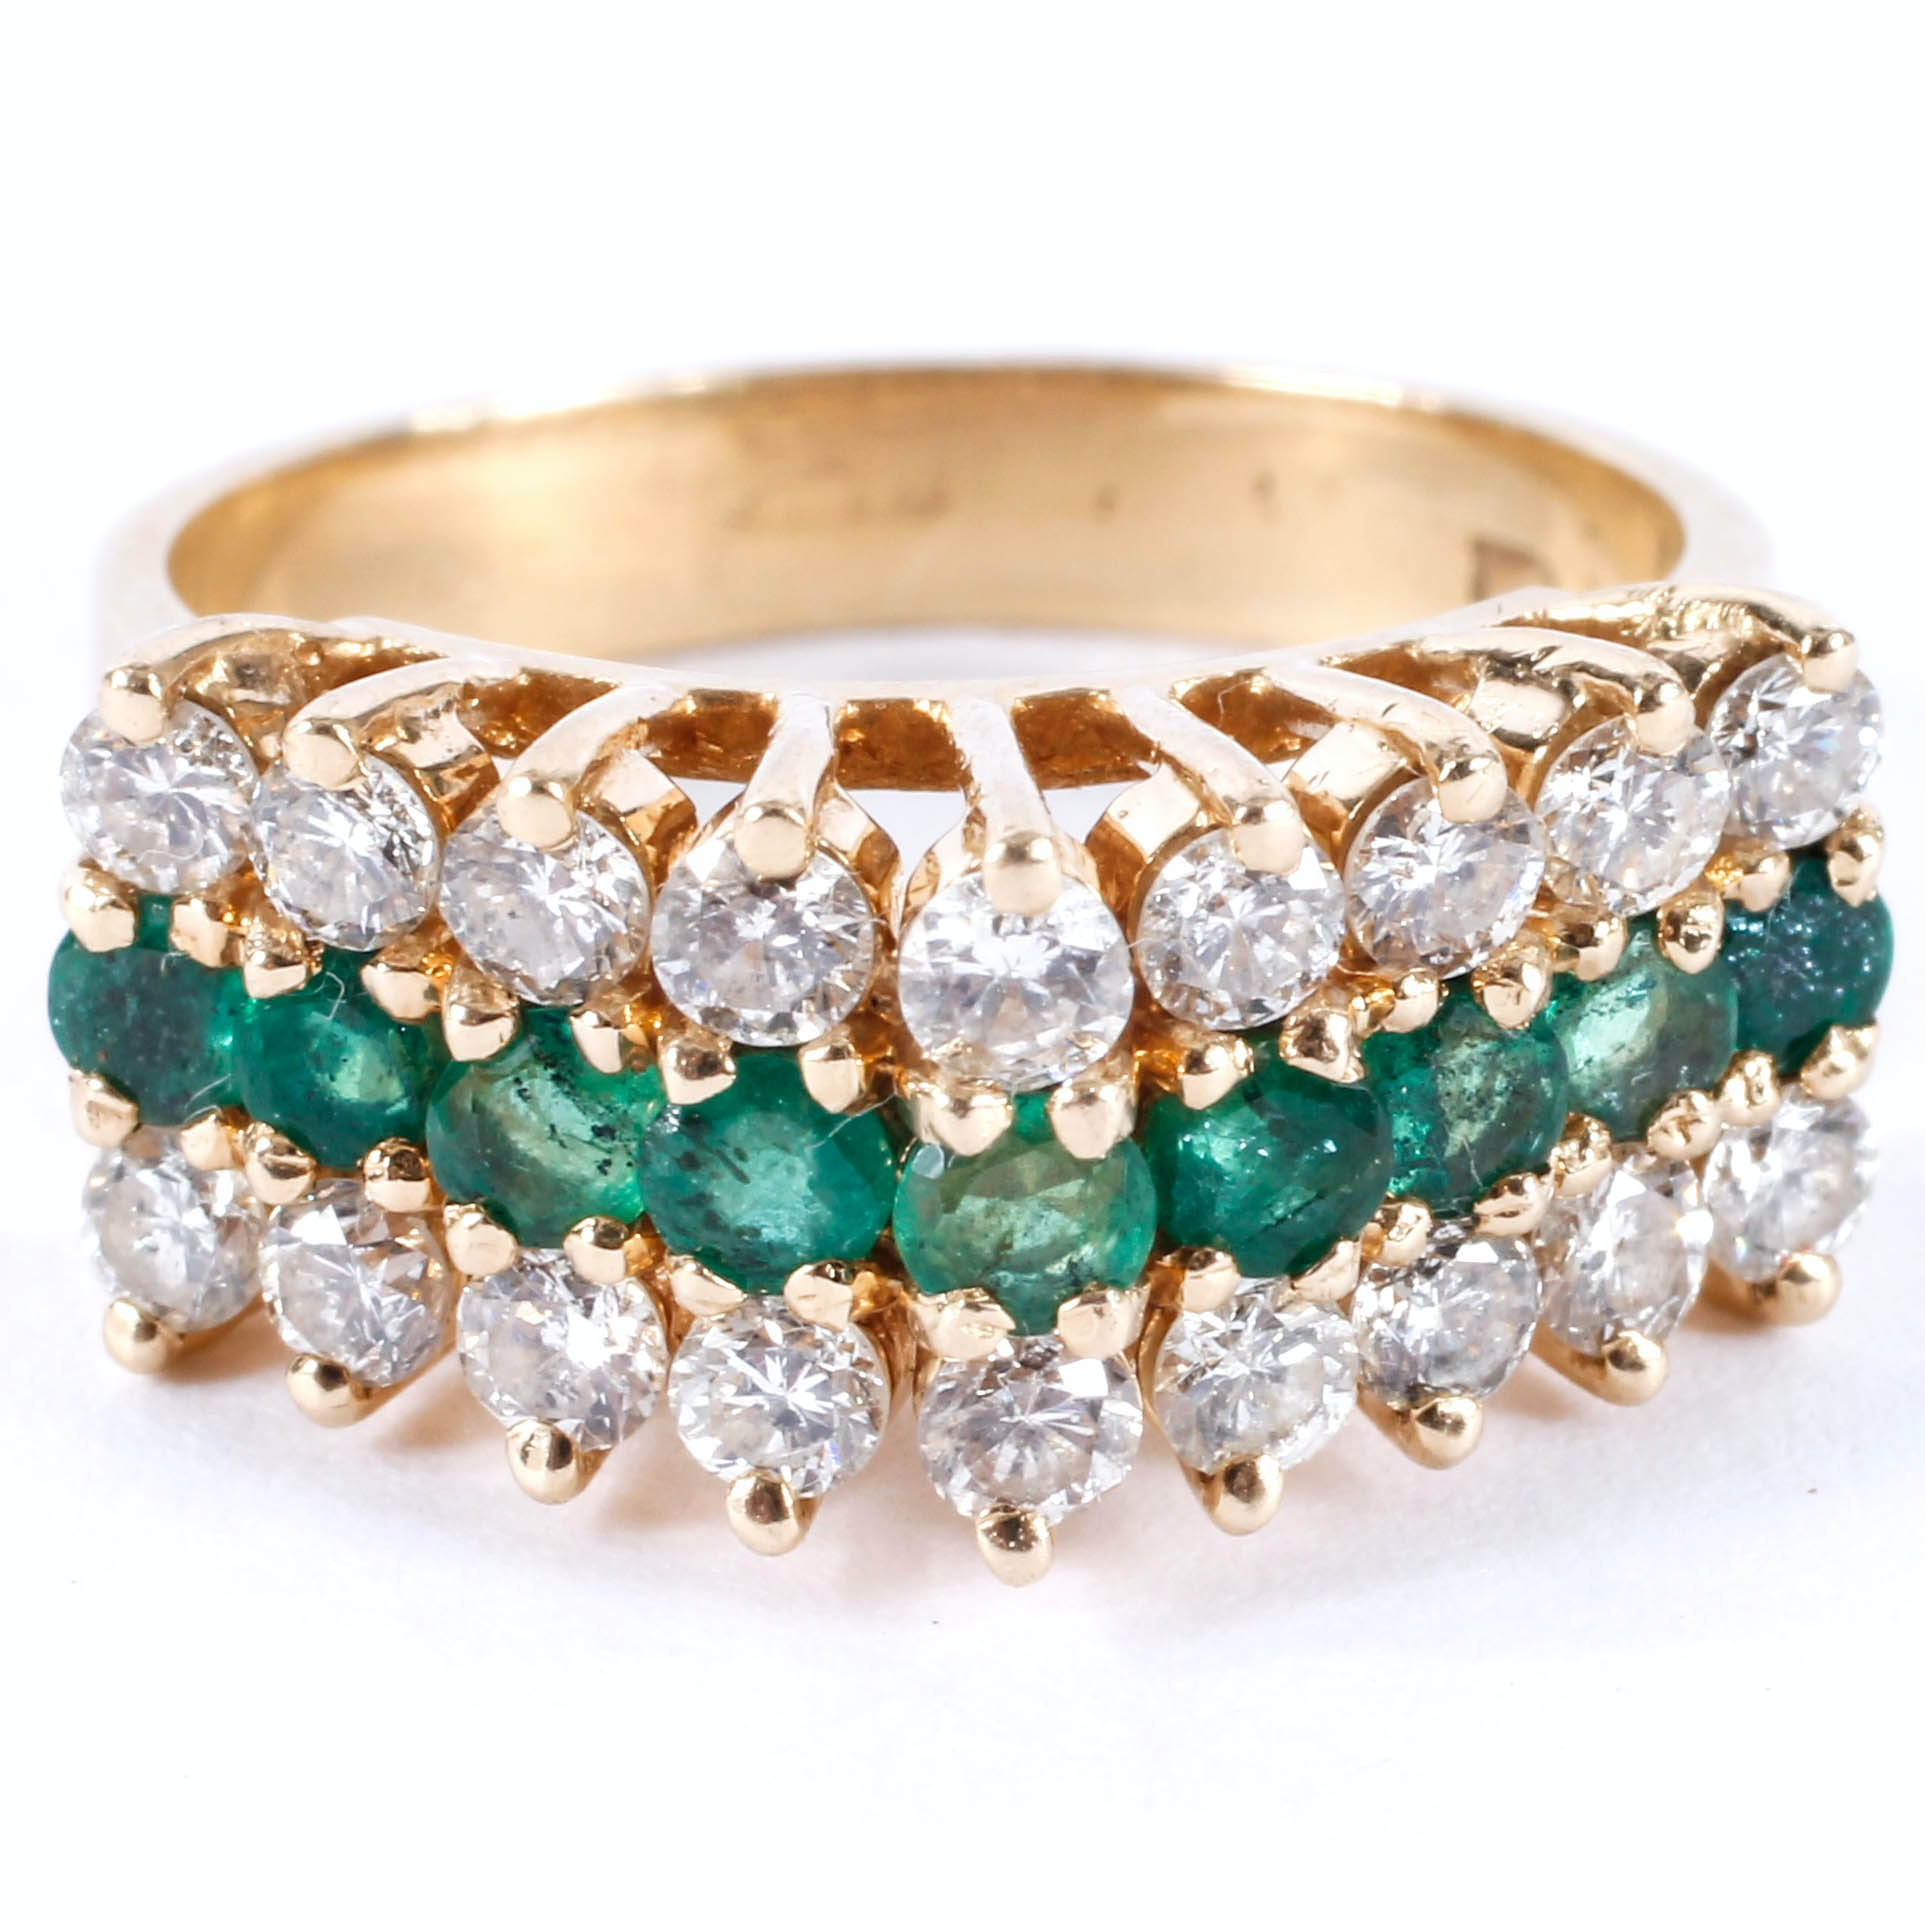 14K Diamond and Emerald Ring